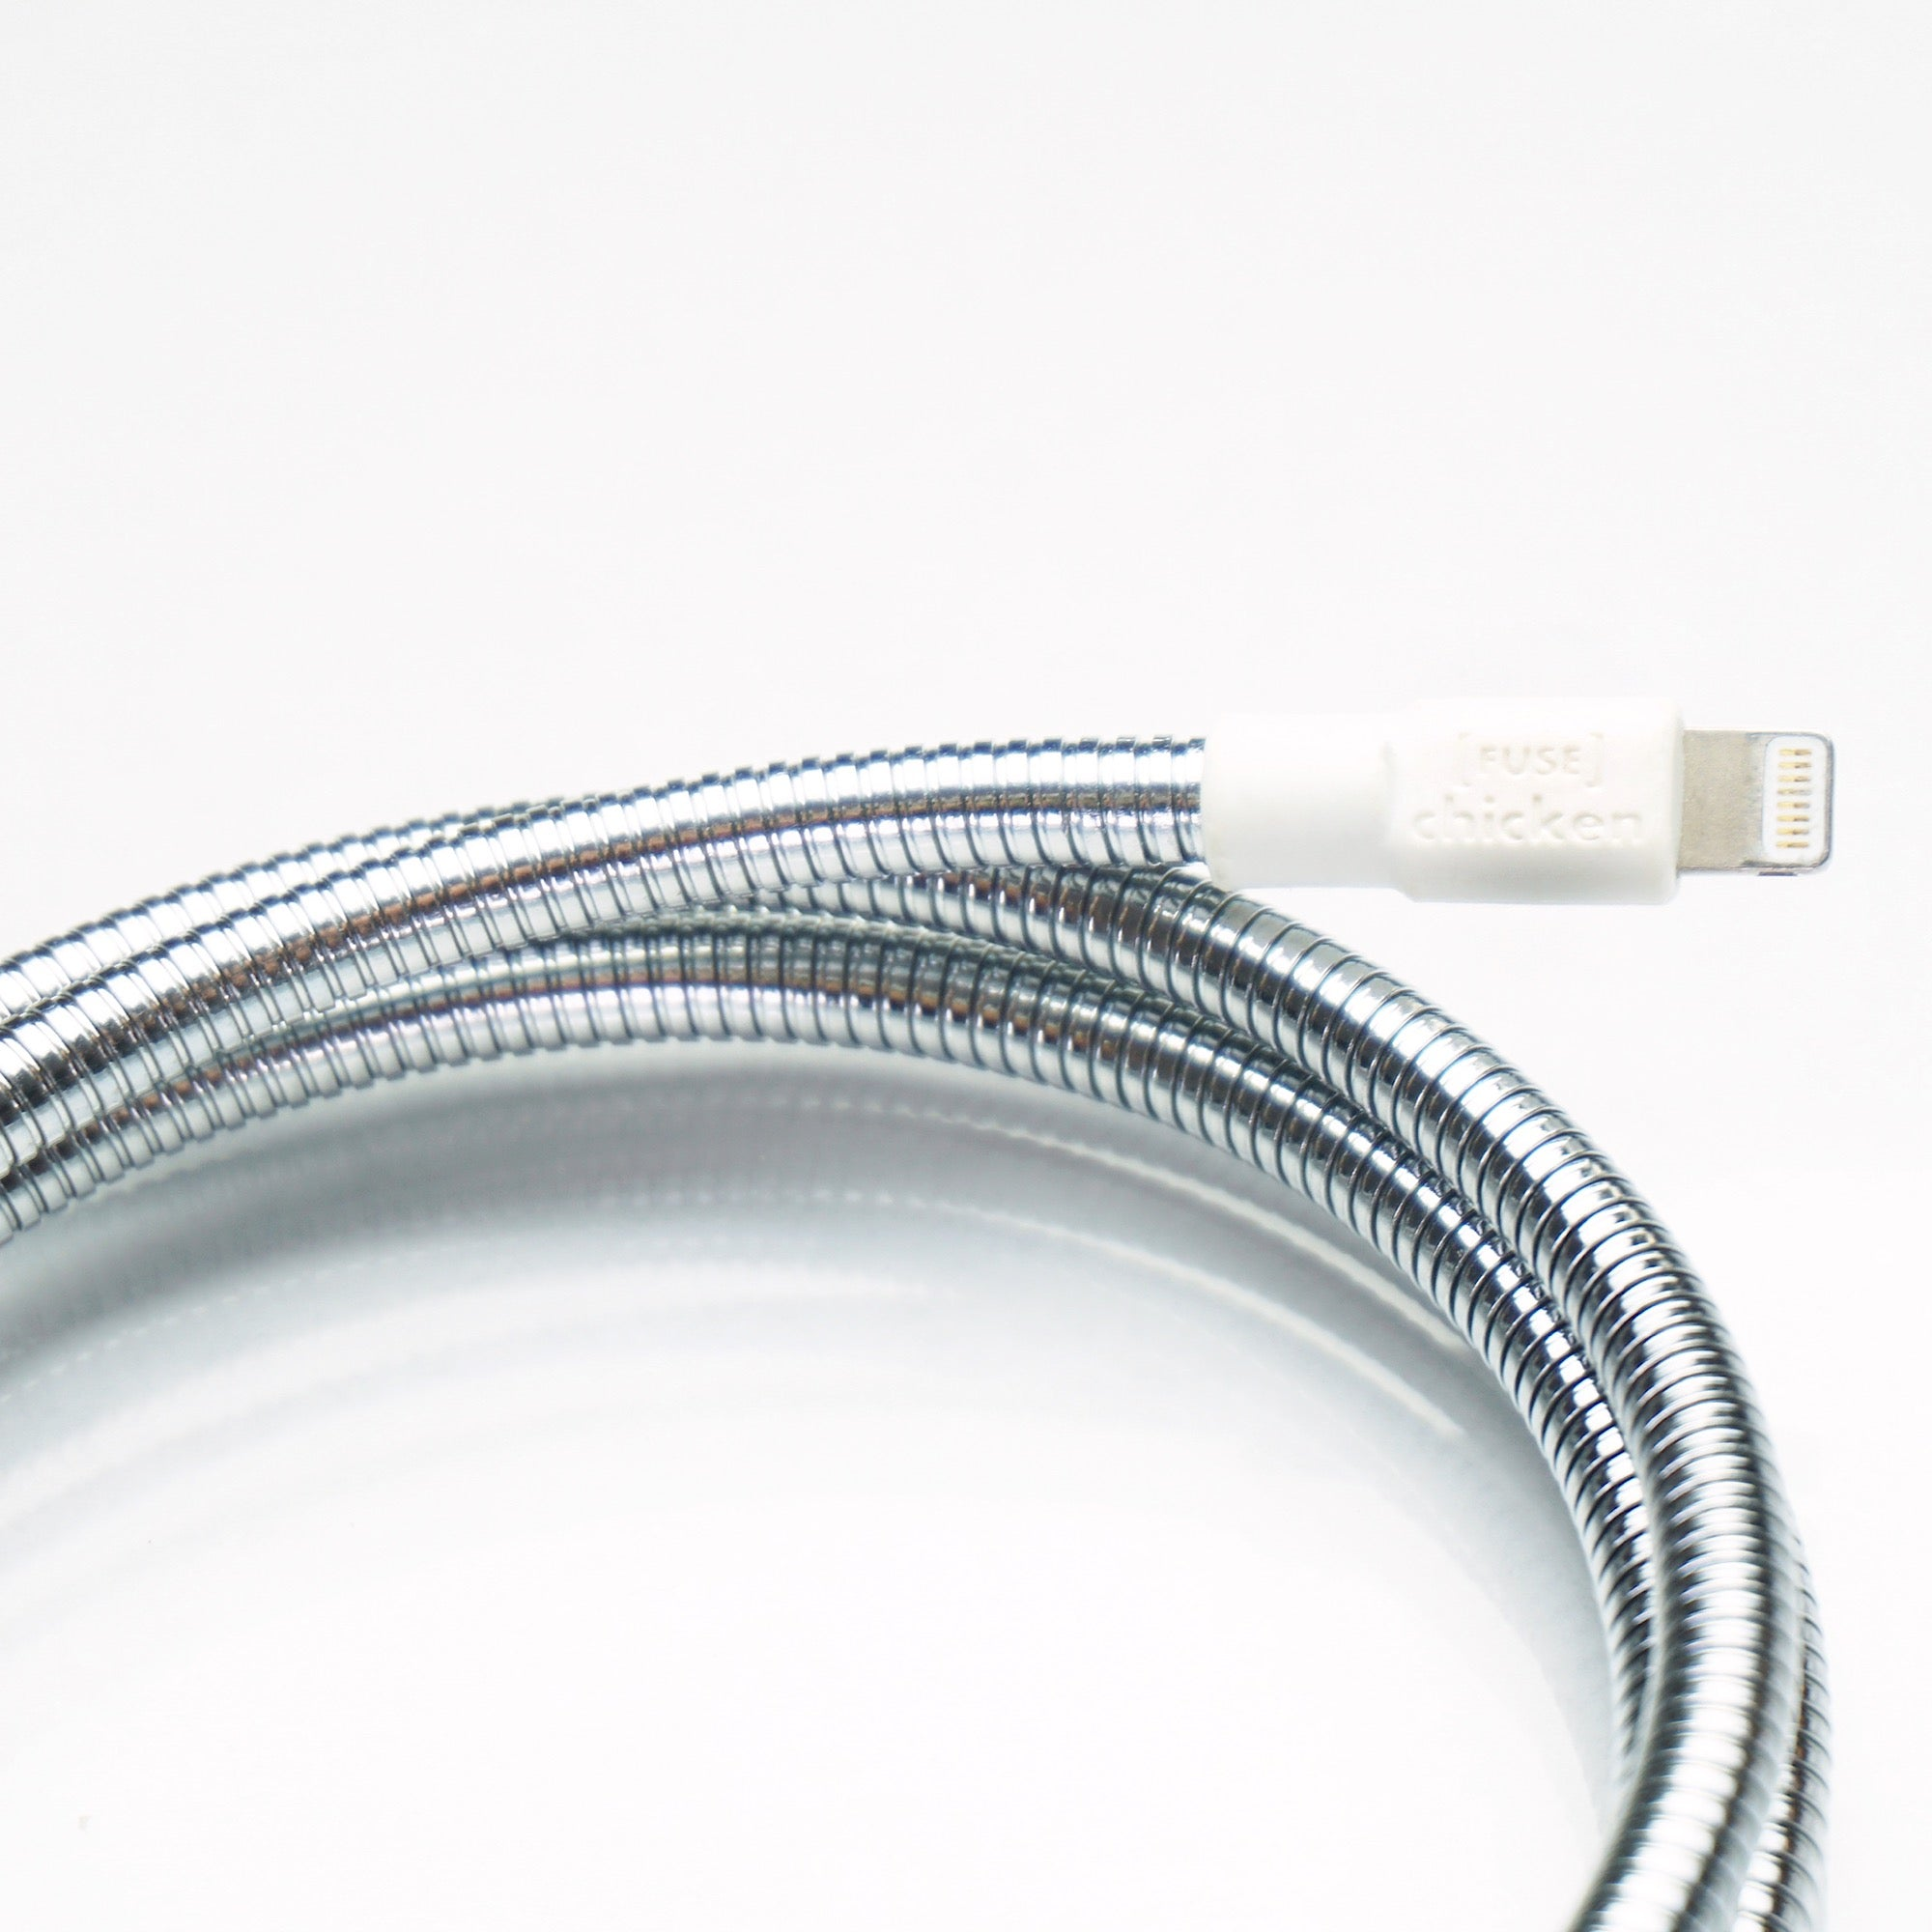 009EE420 F5AC 470A BF9E 384209C969A3?v=1545485963 no more frayed iphone cables! titan is the toughest cable on earth